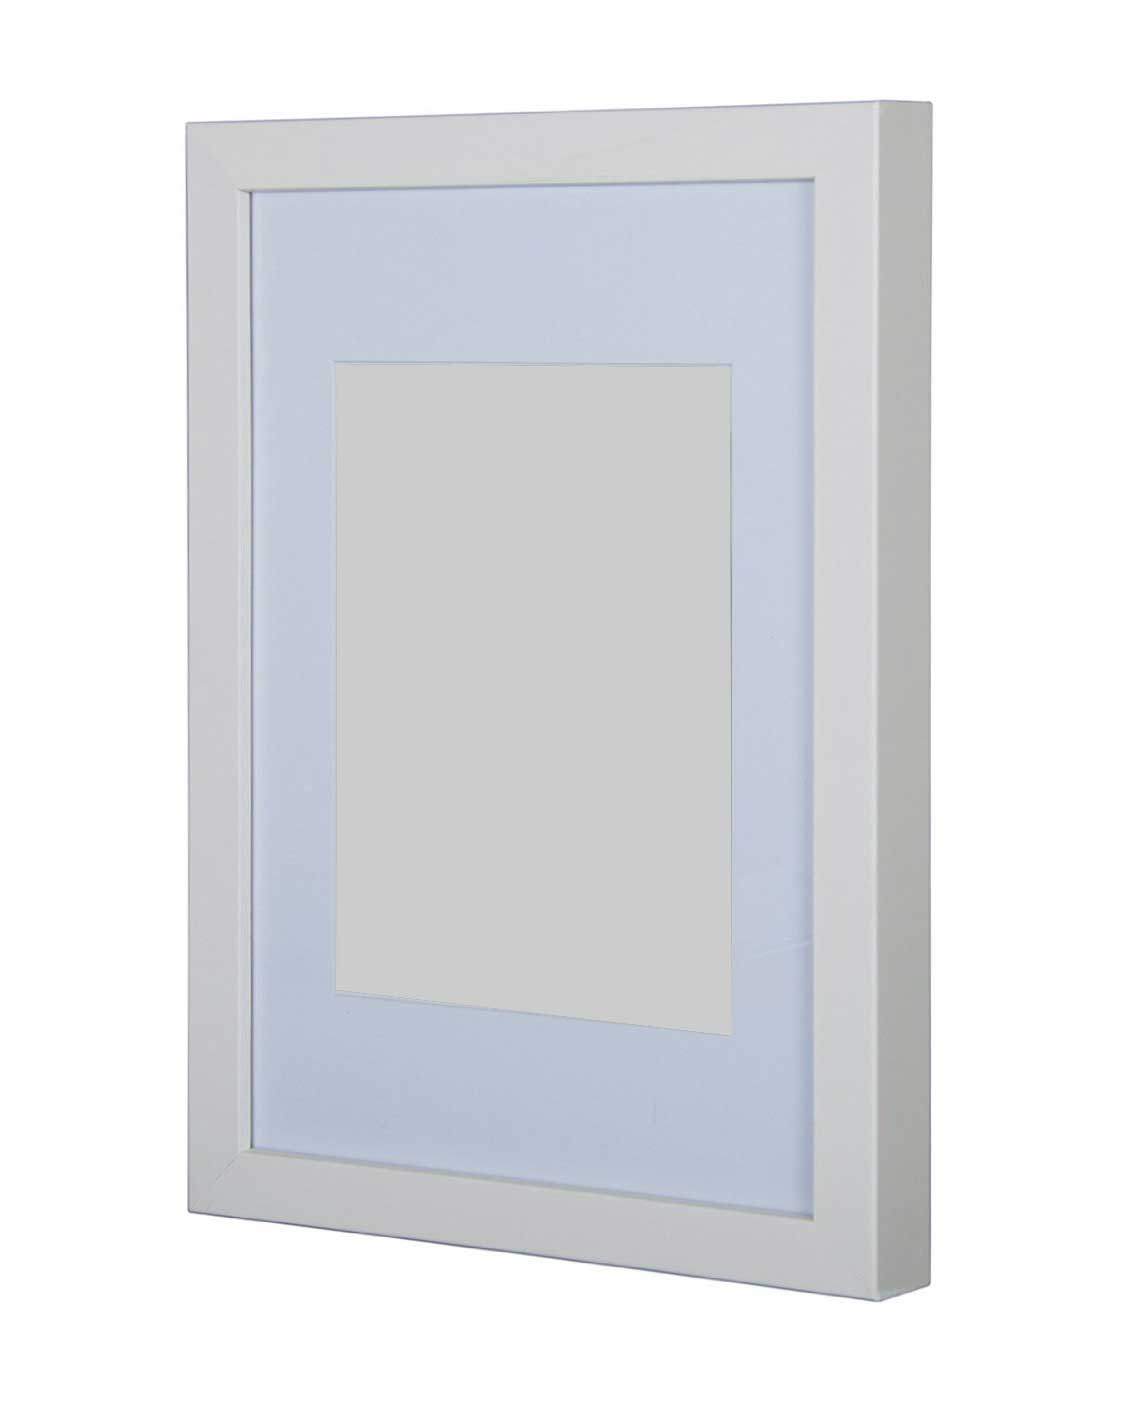 Gallery wooden picture frame white 50x70cm with 40cm x - White wooden picture frames ...